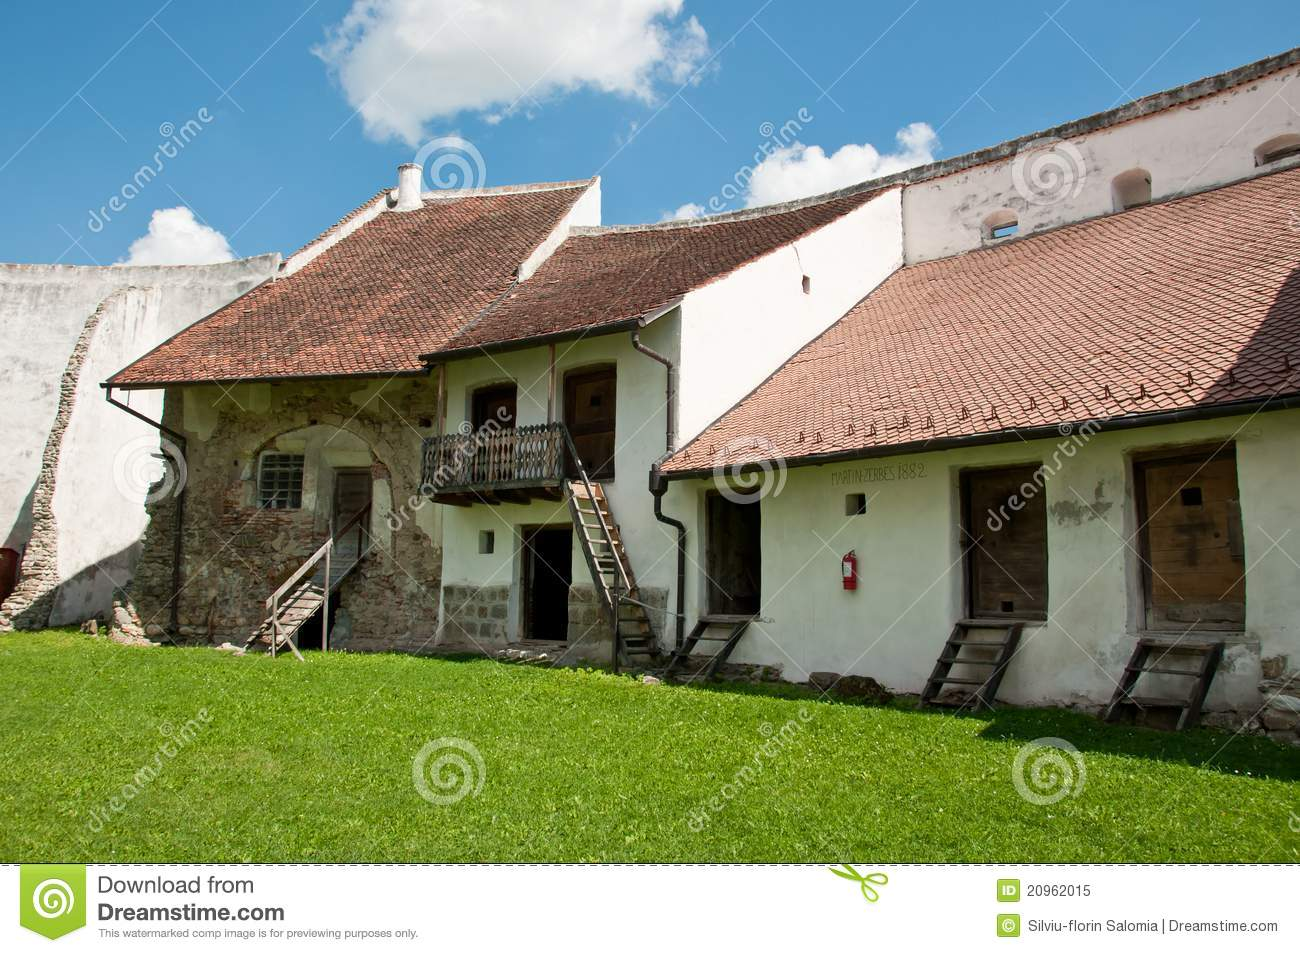 Medieval homes inside a rural romanian fortress stock for Fortress house